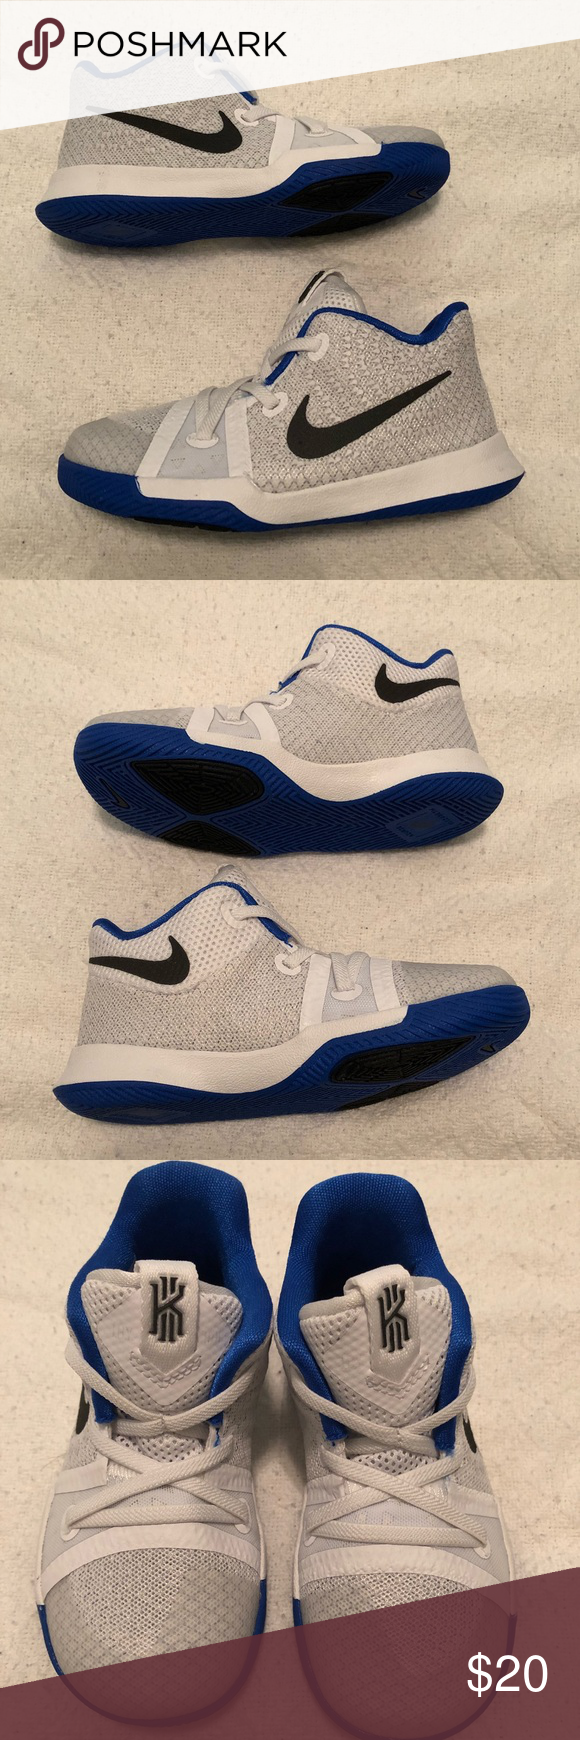 newest 03375 22902 Kyrie Irving Nike Kyrie 3 -toddler Brand new, never worn ...